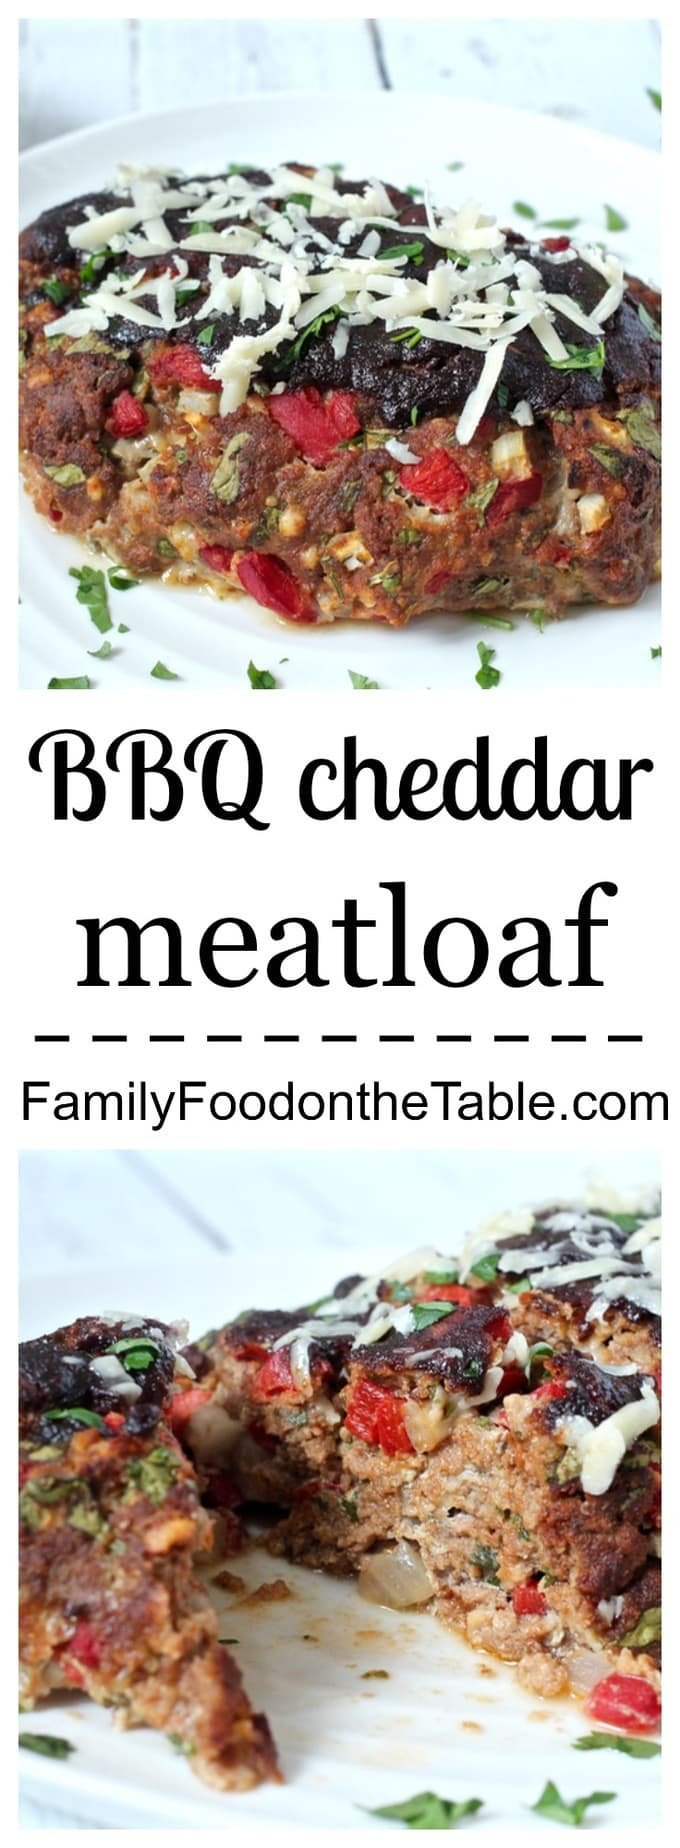 An easy, flavorful, 1-bowl healthy meatloaf with ground turkey, cheddar cheese and BBQ sauce. Sure to be a family favorite! | FamilyFoodontheTable.com